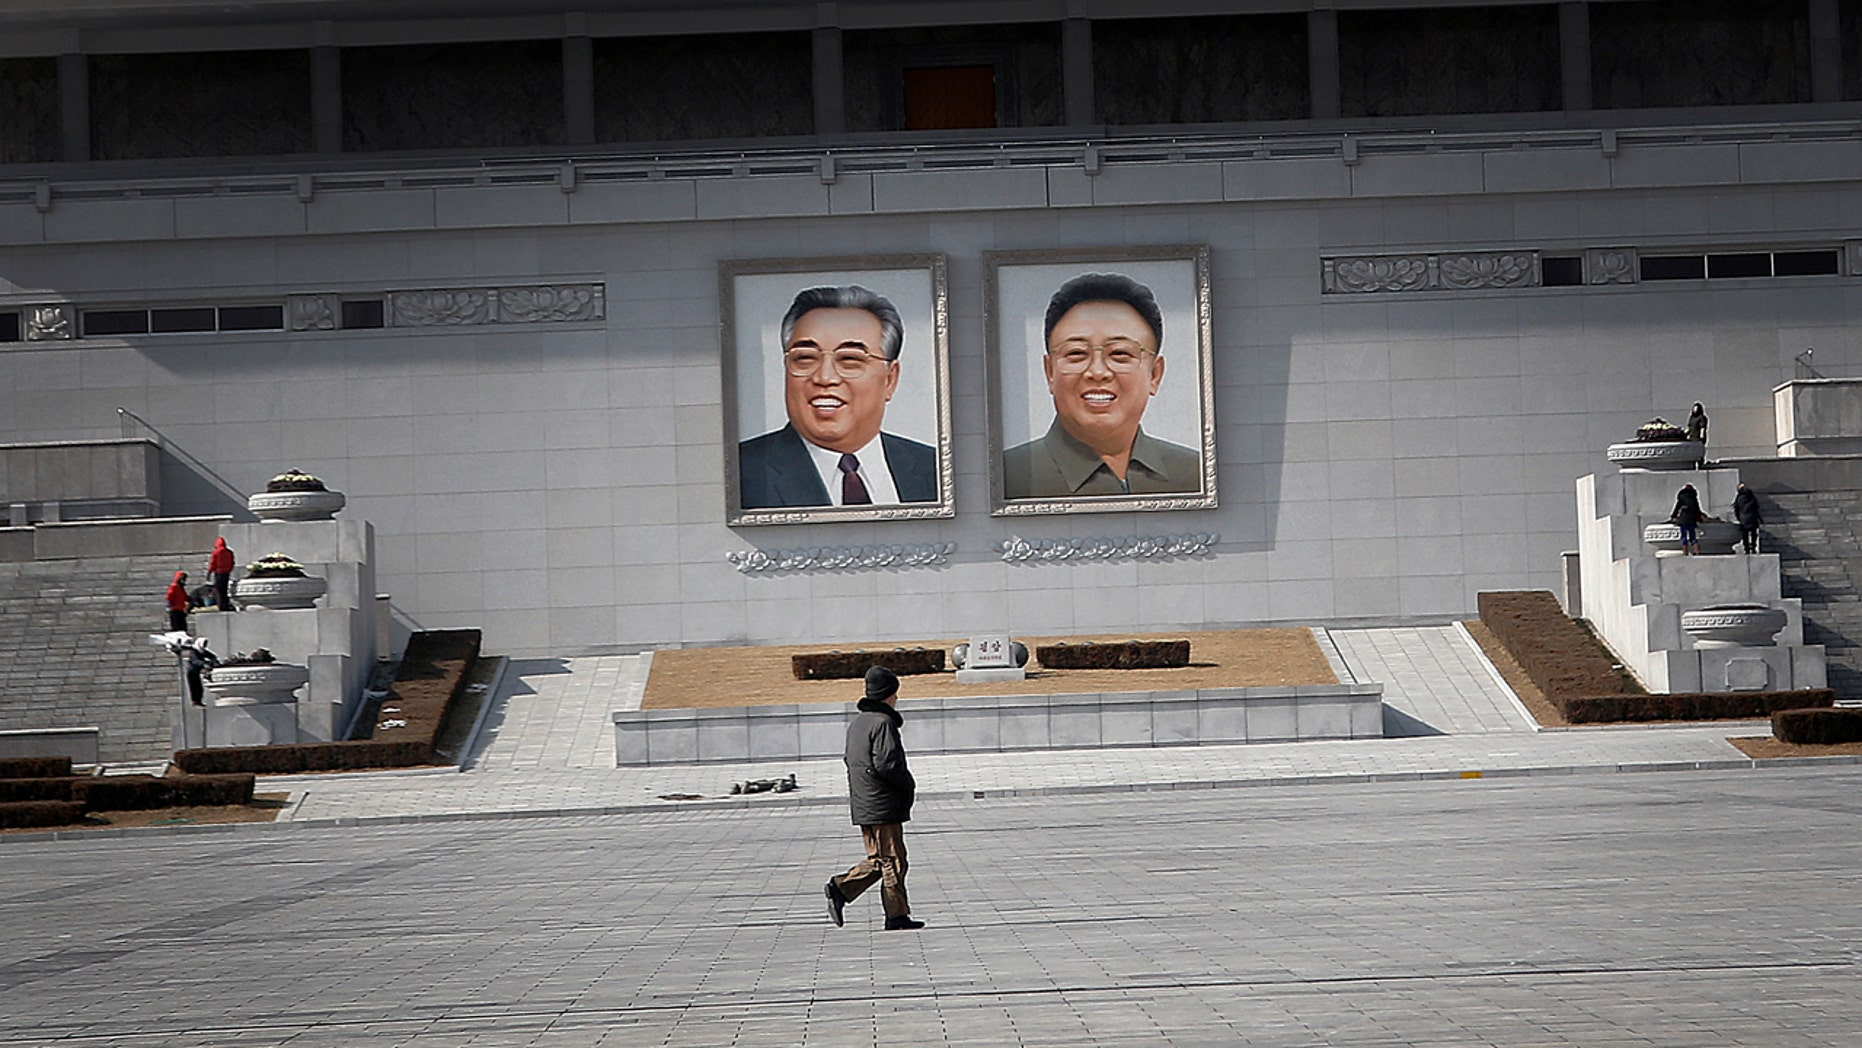 Feb. 14, 2016: A man walks past portraits of the late North Korean leaders Kim Il Sung and Kim Jong Il at Kim Il Sung Square in Pyongyang, North Korea (AP/Wong Maye-E)